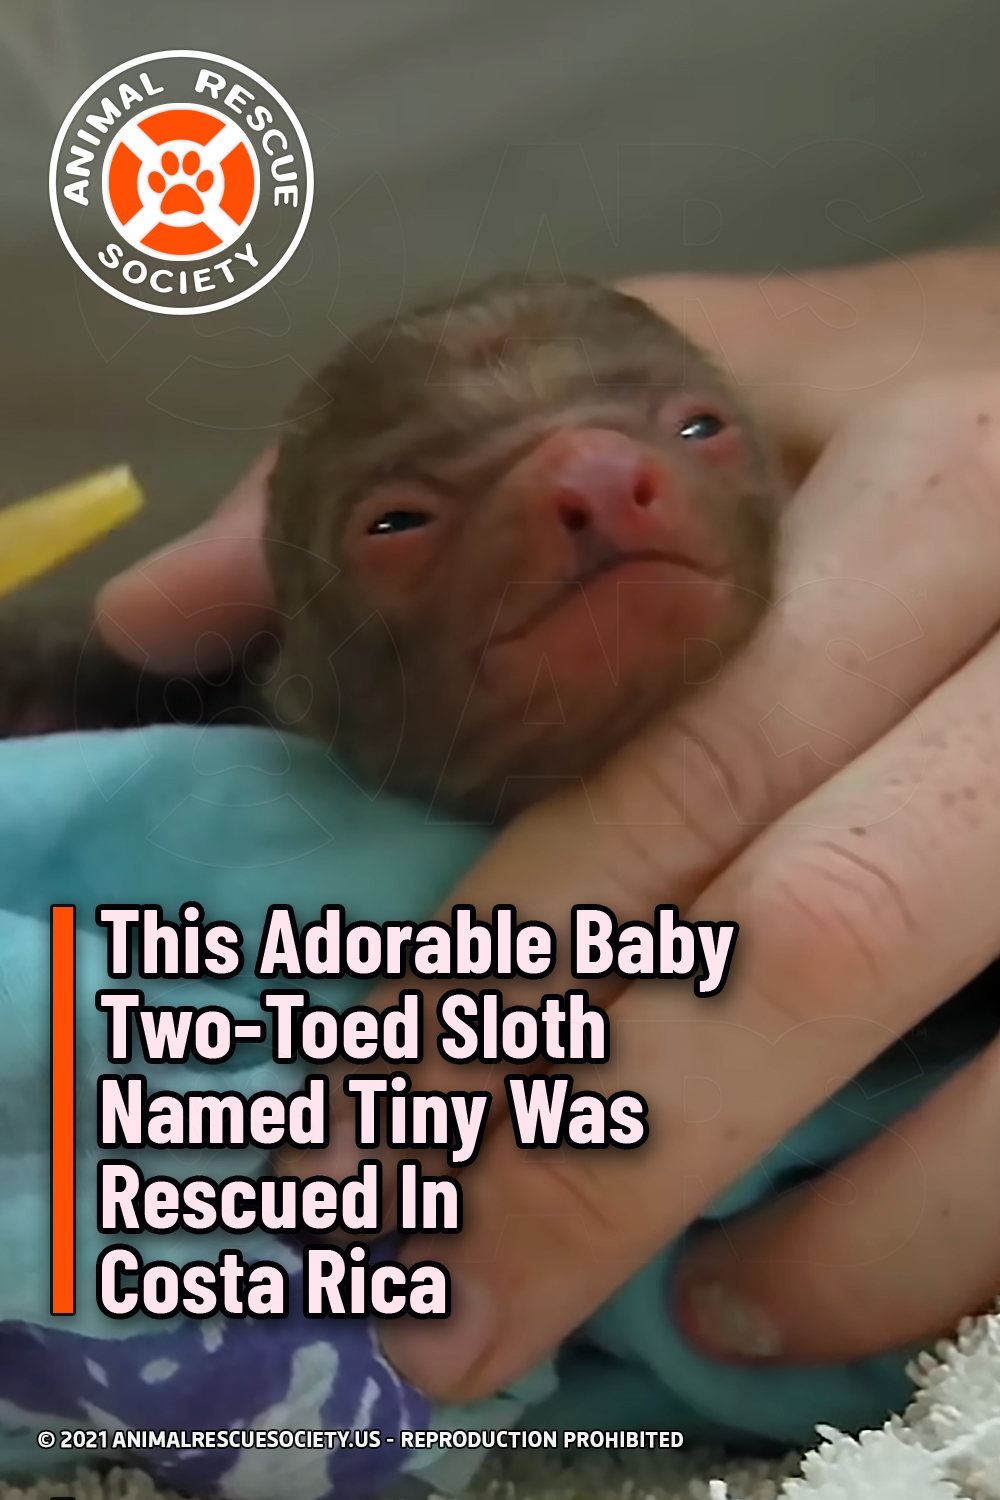 This Adorable Baby Two-Toed Sloth Named Tiny Was Rescued In Costa Rica